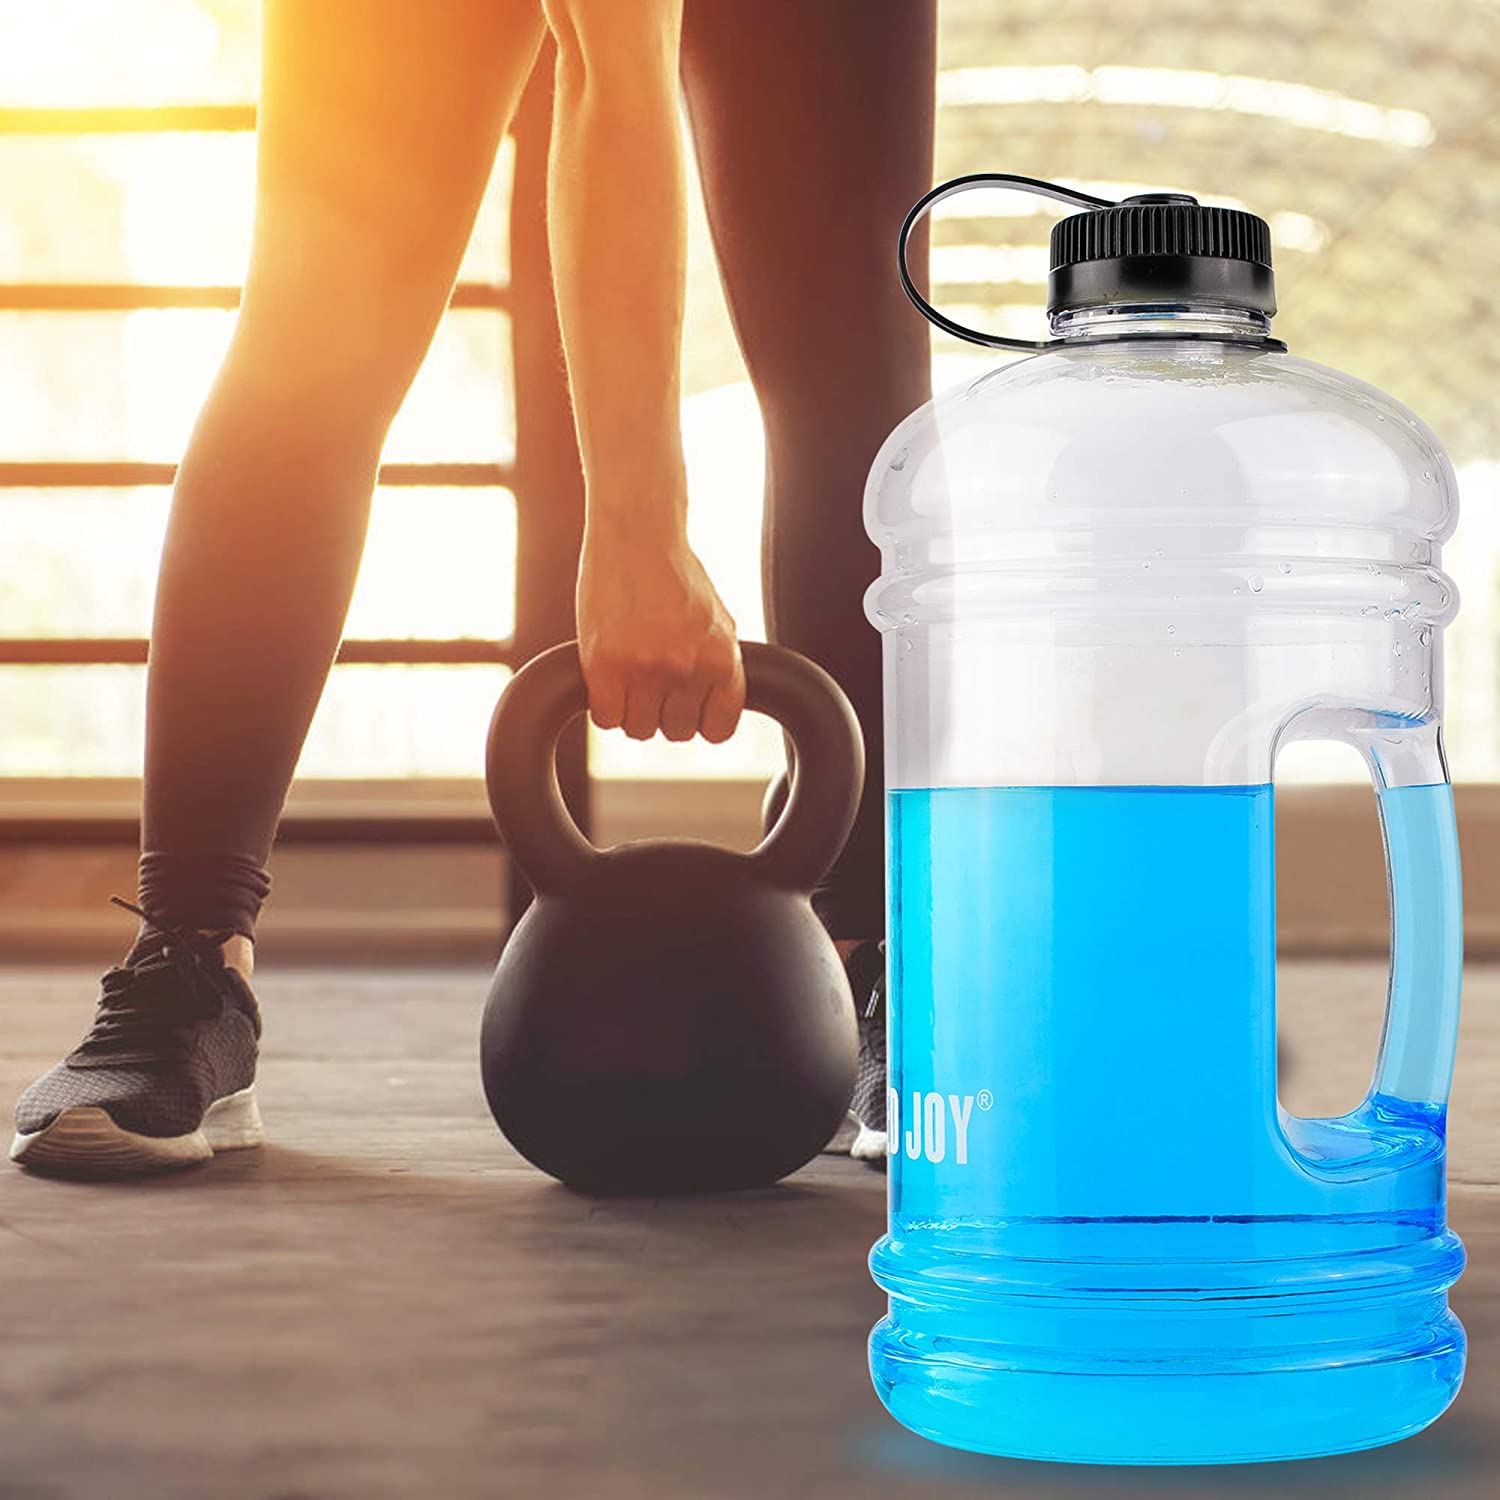 BOTTLEDJOY Large Water Bottle BPA Free Big Sports Water Bottle with Handle Water Jug Container for Outdoor Drinking Water Bottle for Gym Fitness Bodybuilding Sports Bottle with Dust Cap Large Water Bottle with Handle Shenzhen winner Technology Co Ltd.